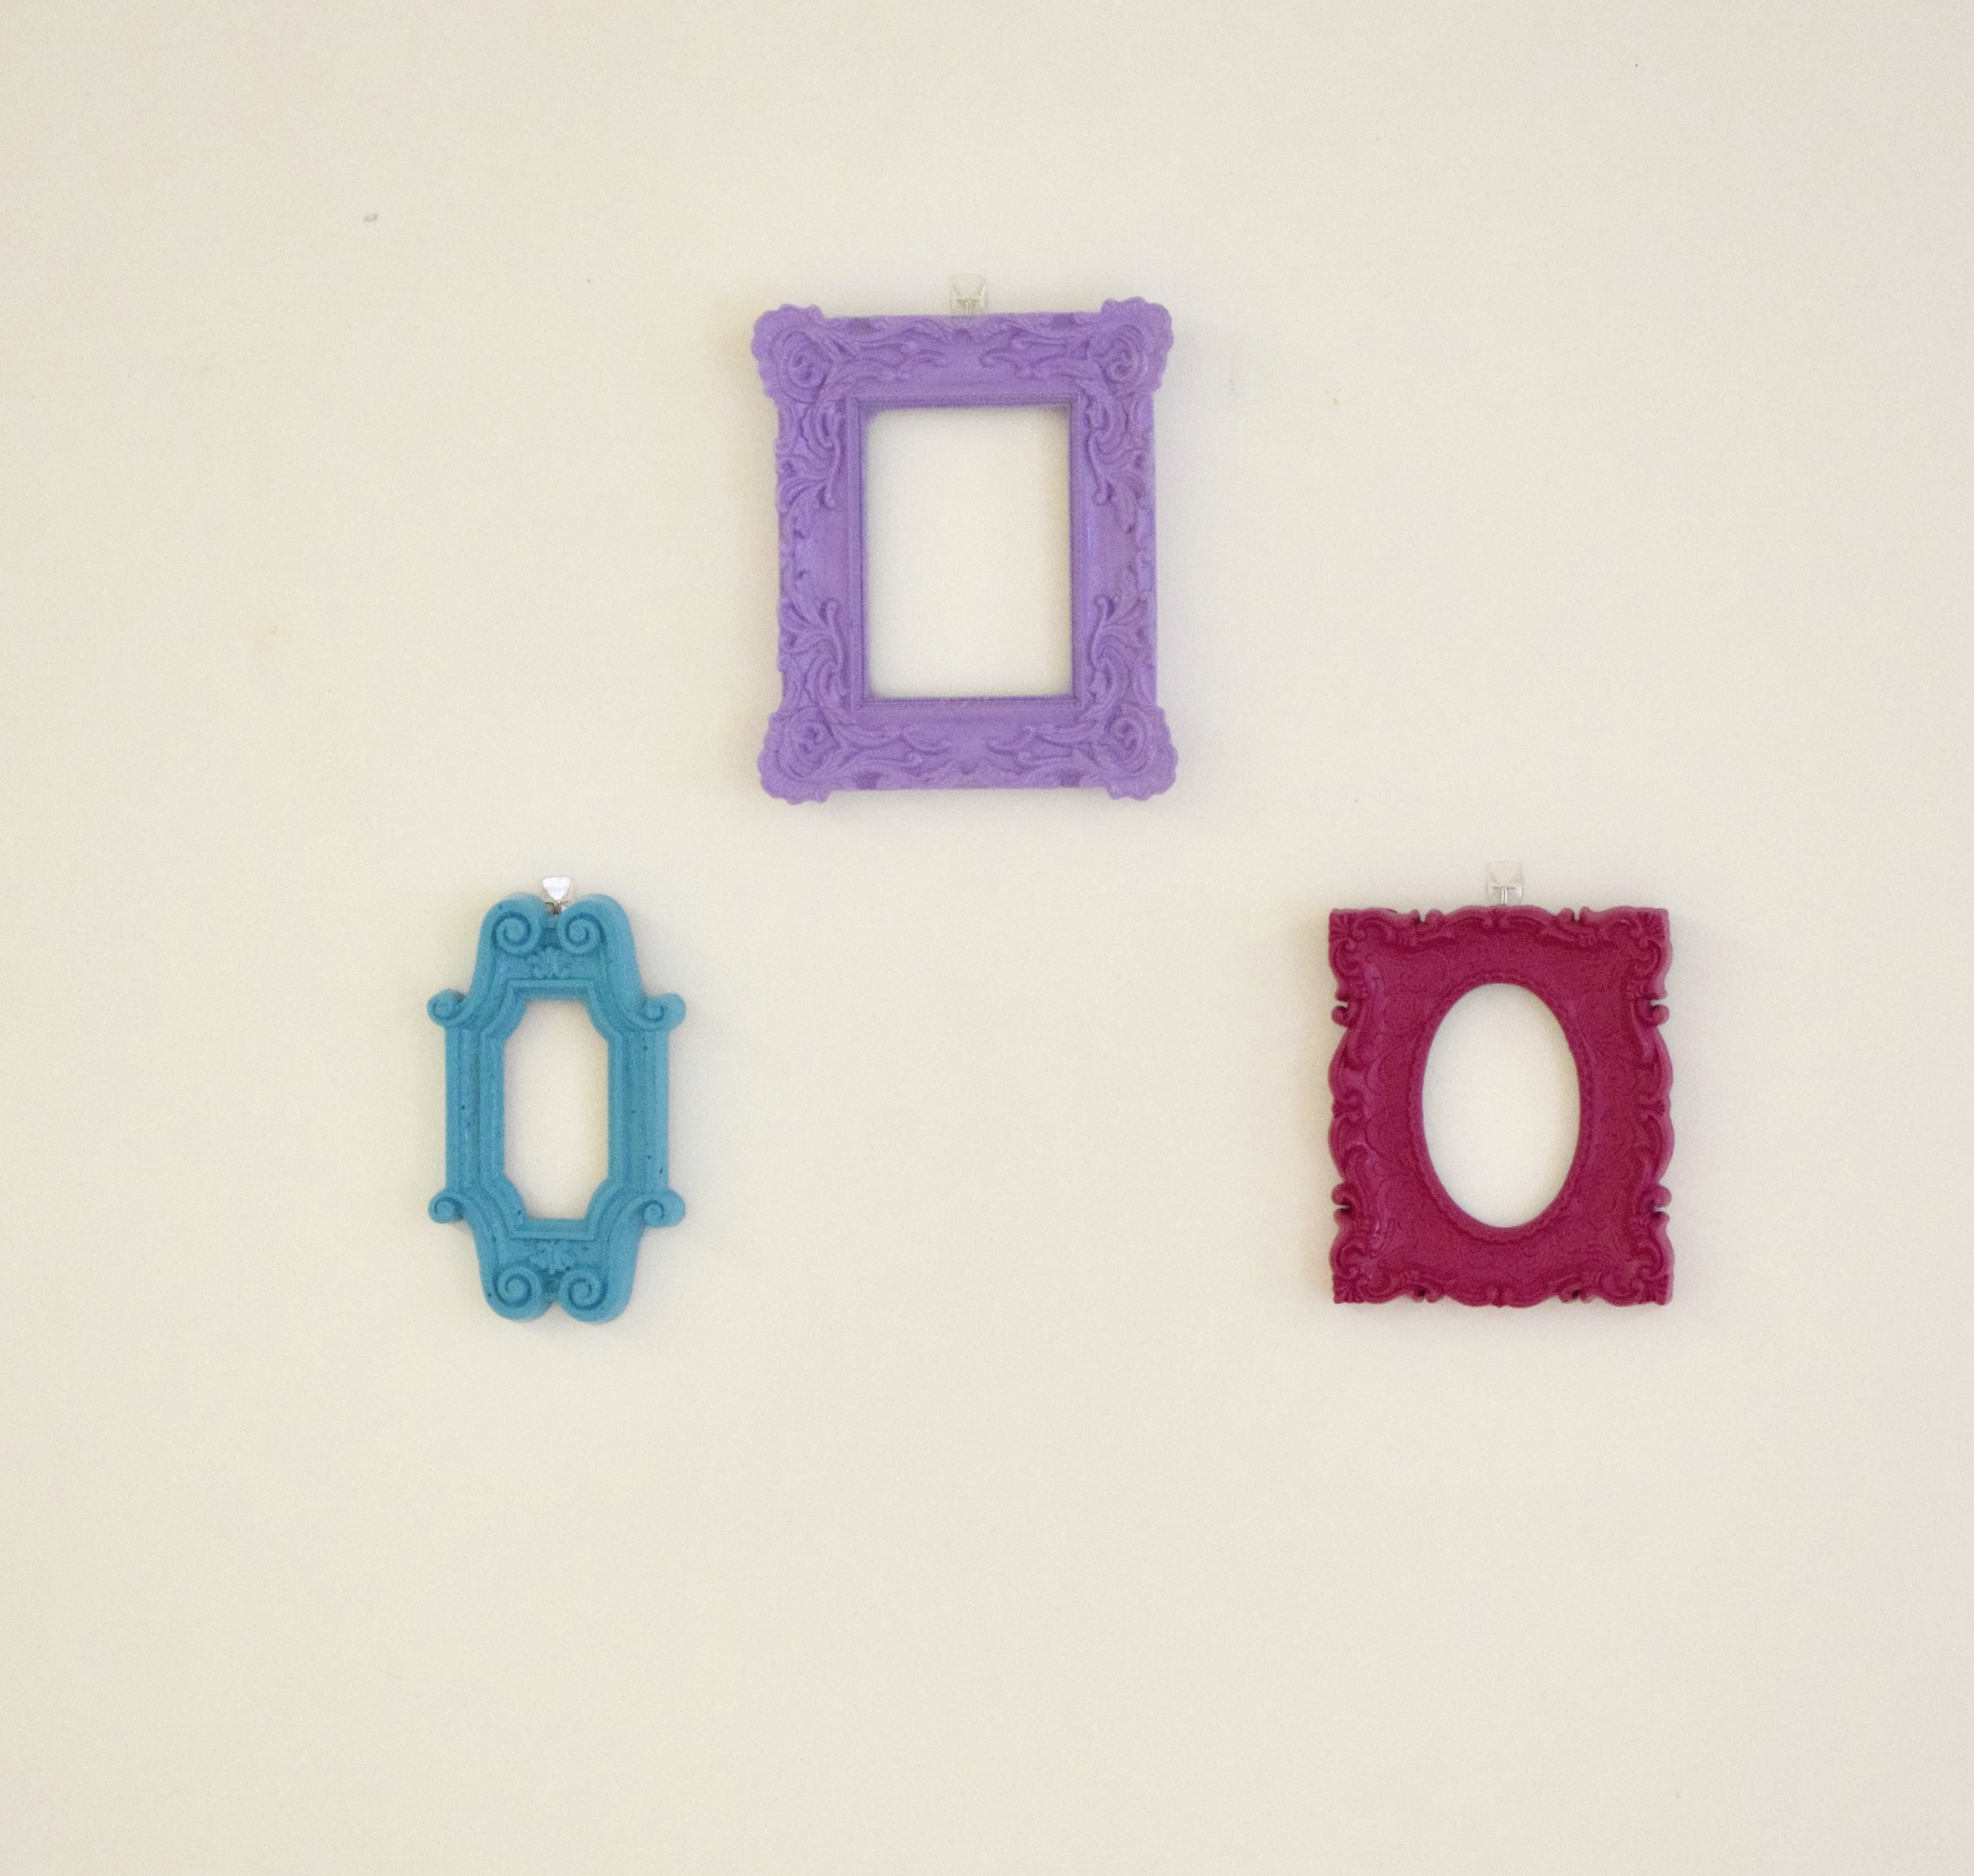 Another easy DIY is painting bright picture frames. Look for lightweight, decorative frames and paint to match your color scheme. We chose three main colors and used  Command strips  so that we could put them where we wanted and also remove them easily afterward.